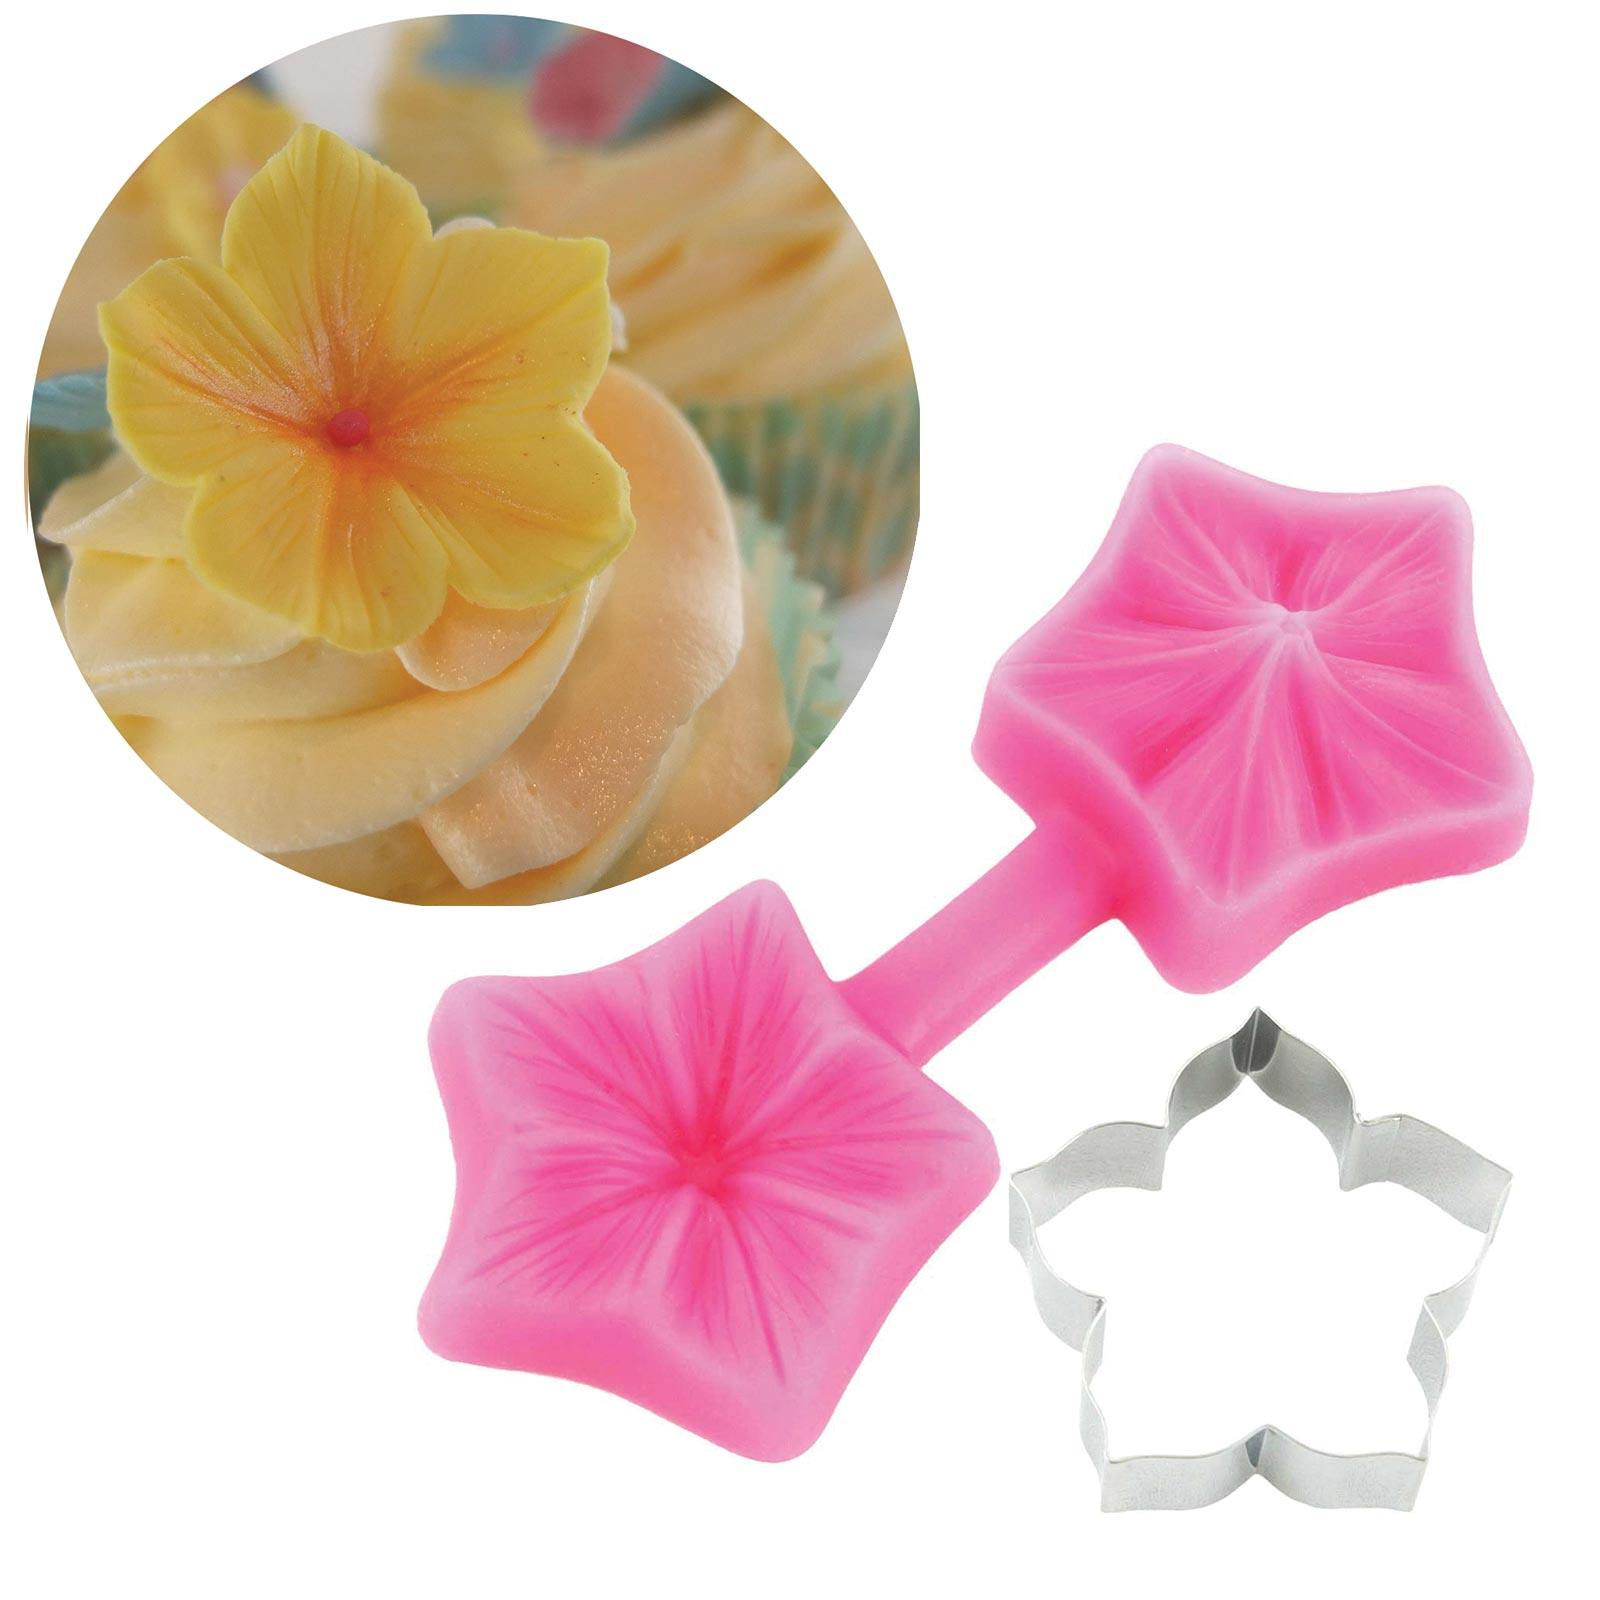 Petunia Cutter & Mould Set - Blossom Sugar Art cake_decorating_mold craft_mold icing_flowers